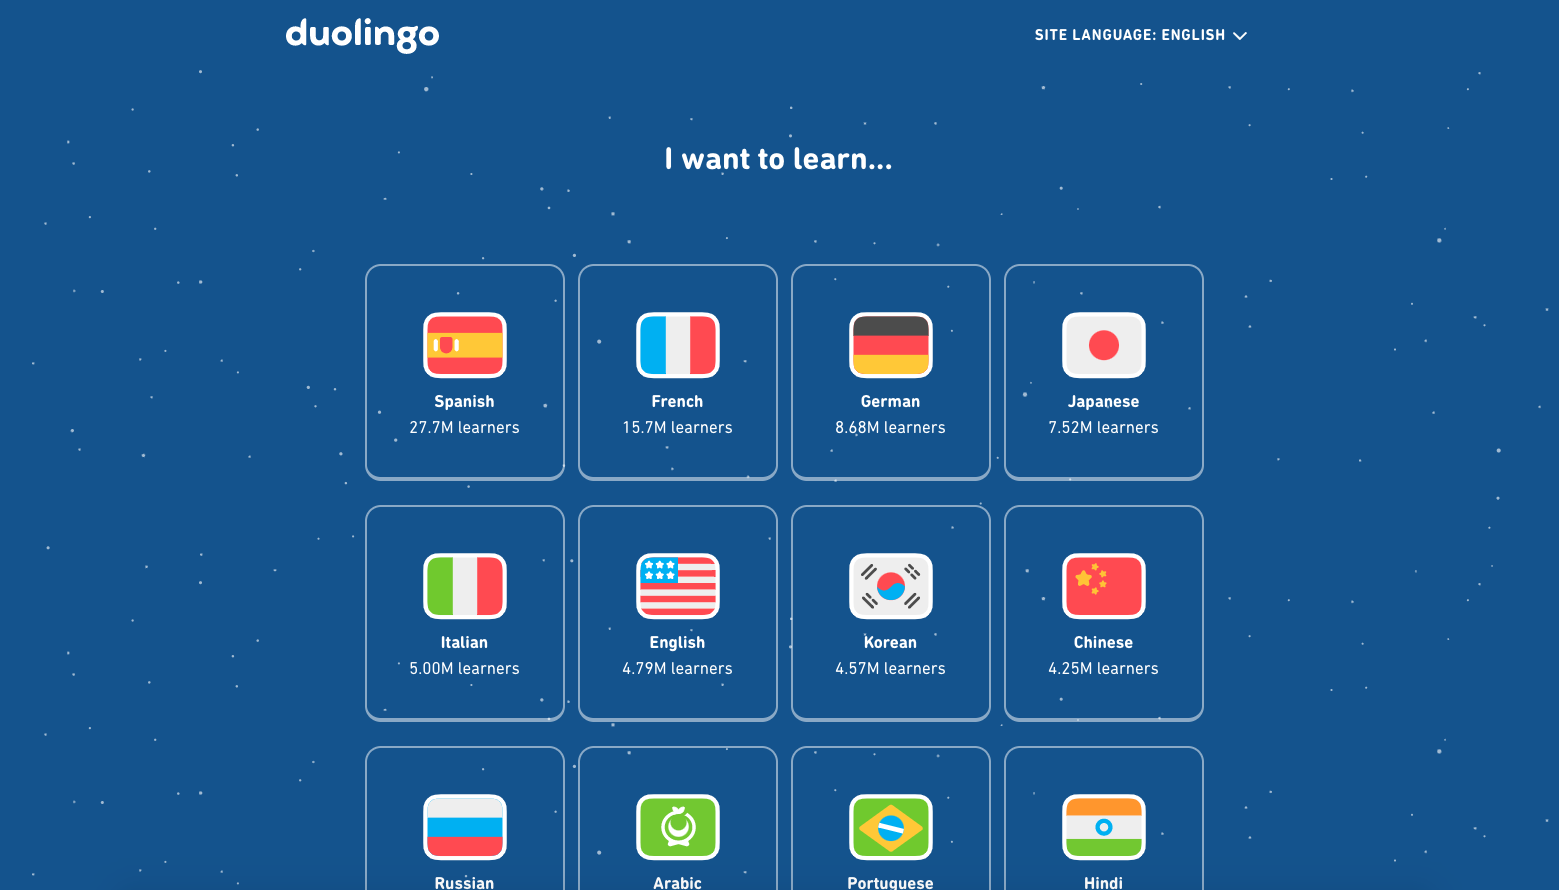 Duolingo list of languages during the sign up process